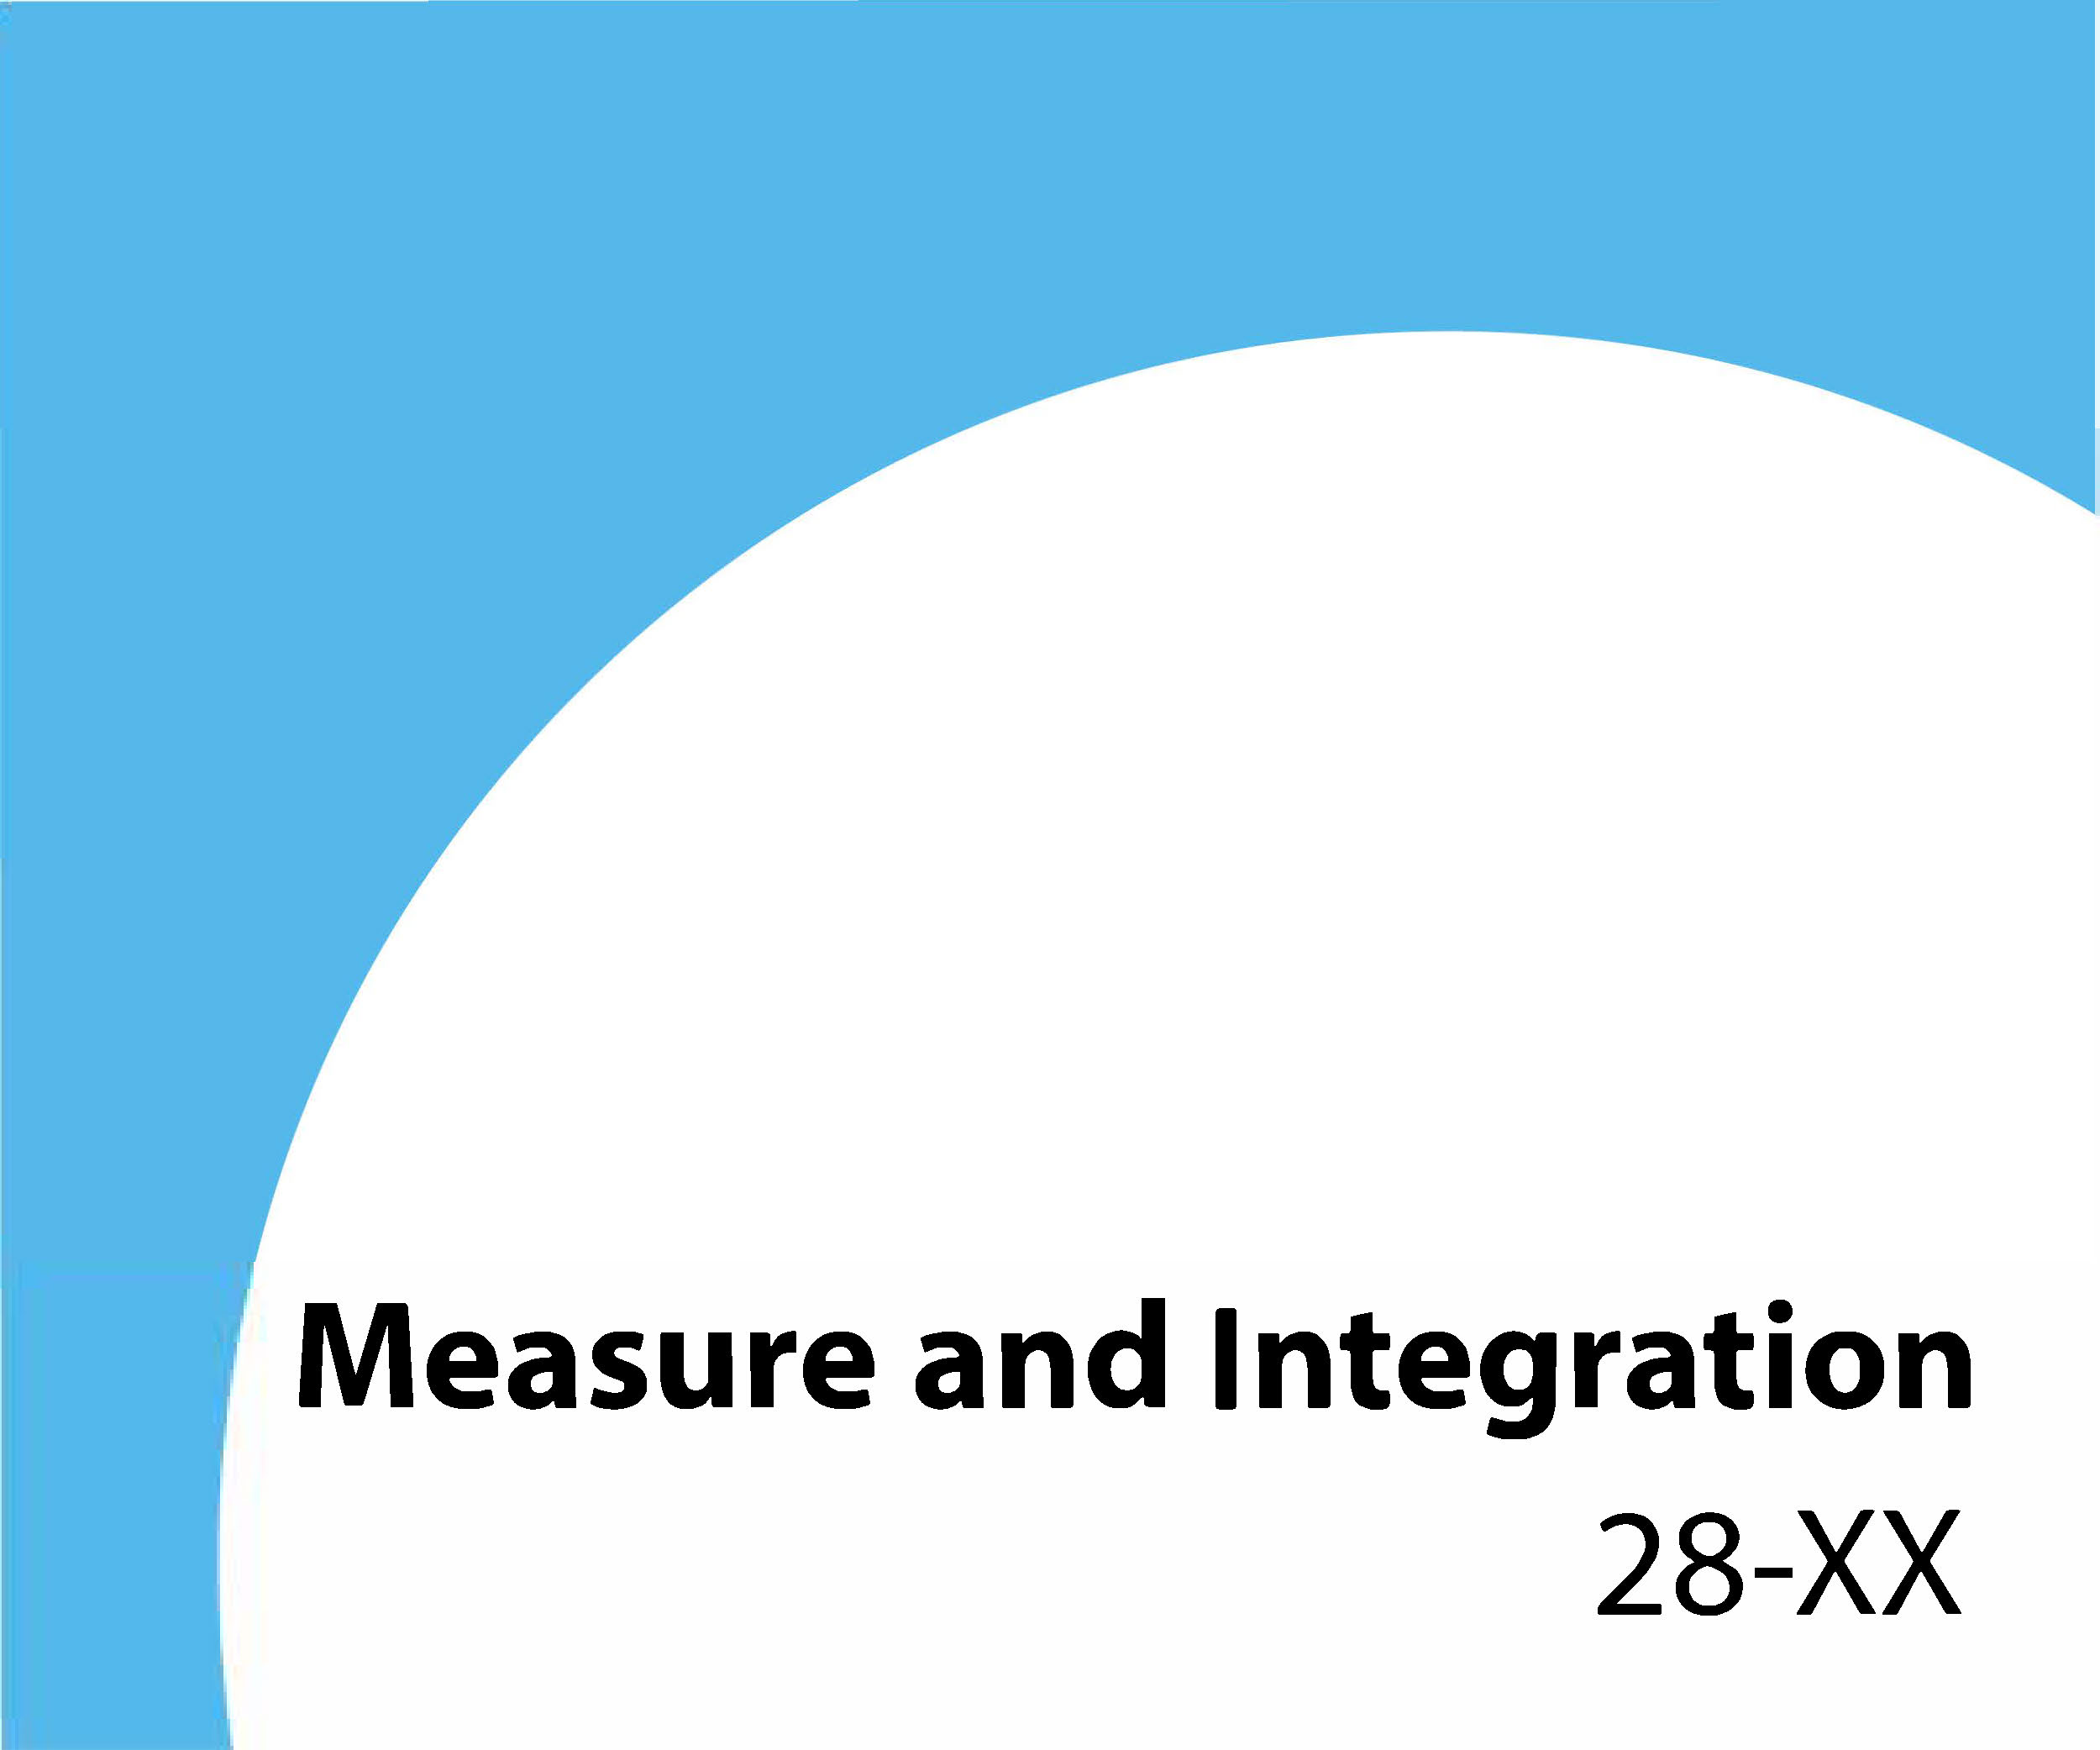 28-XX - Measure and Integration